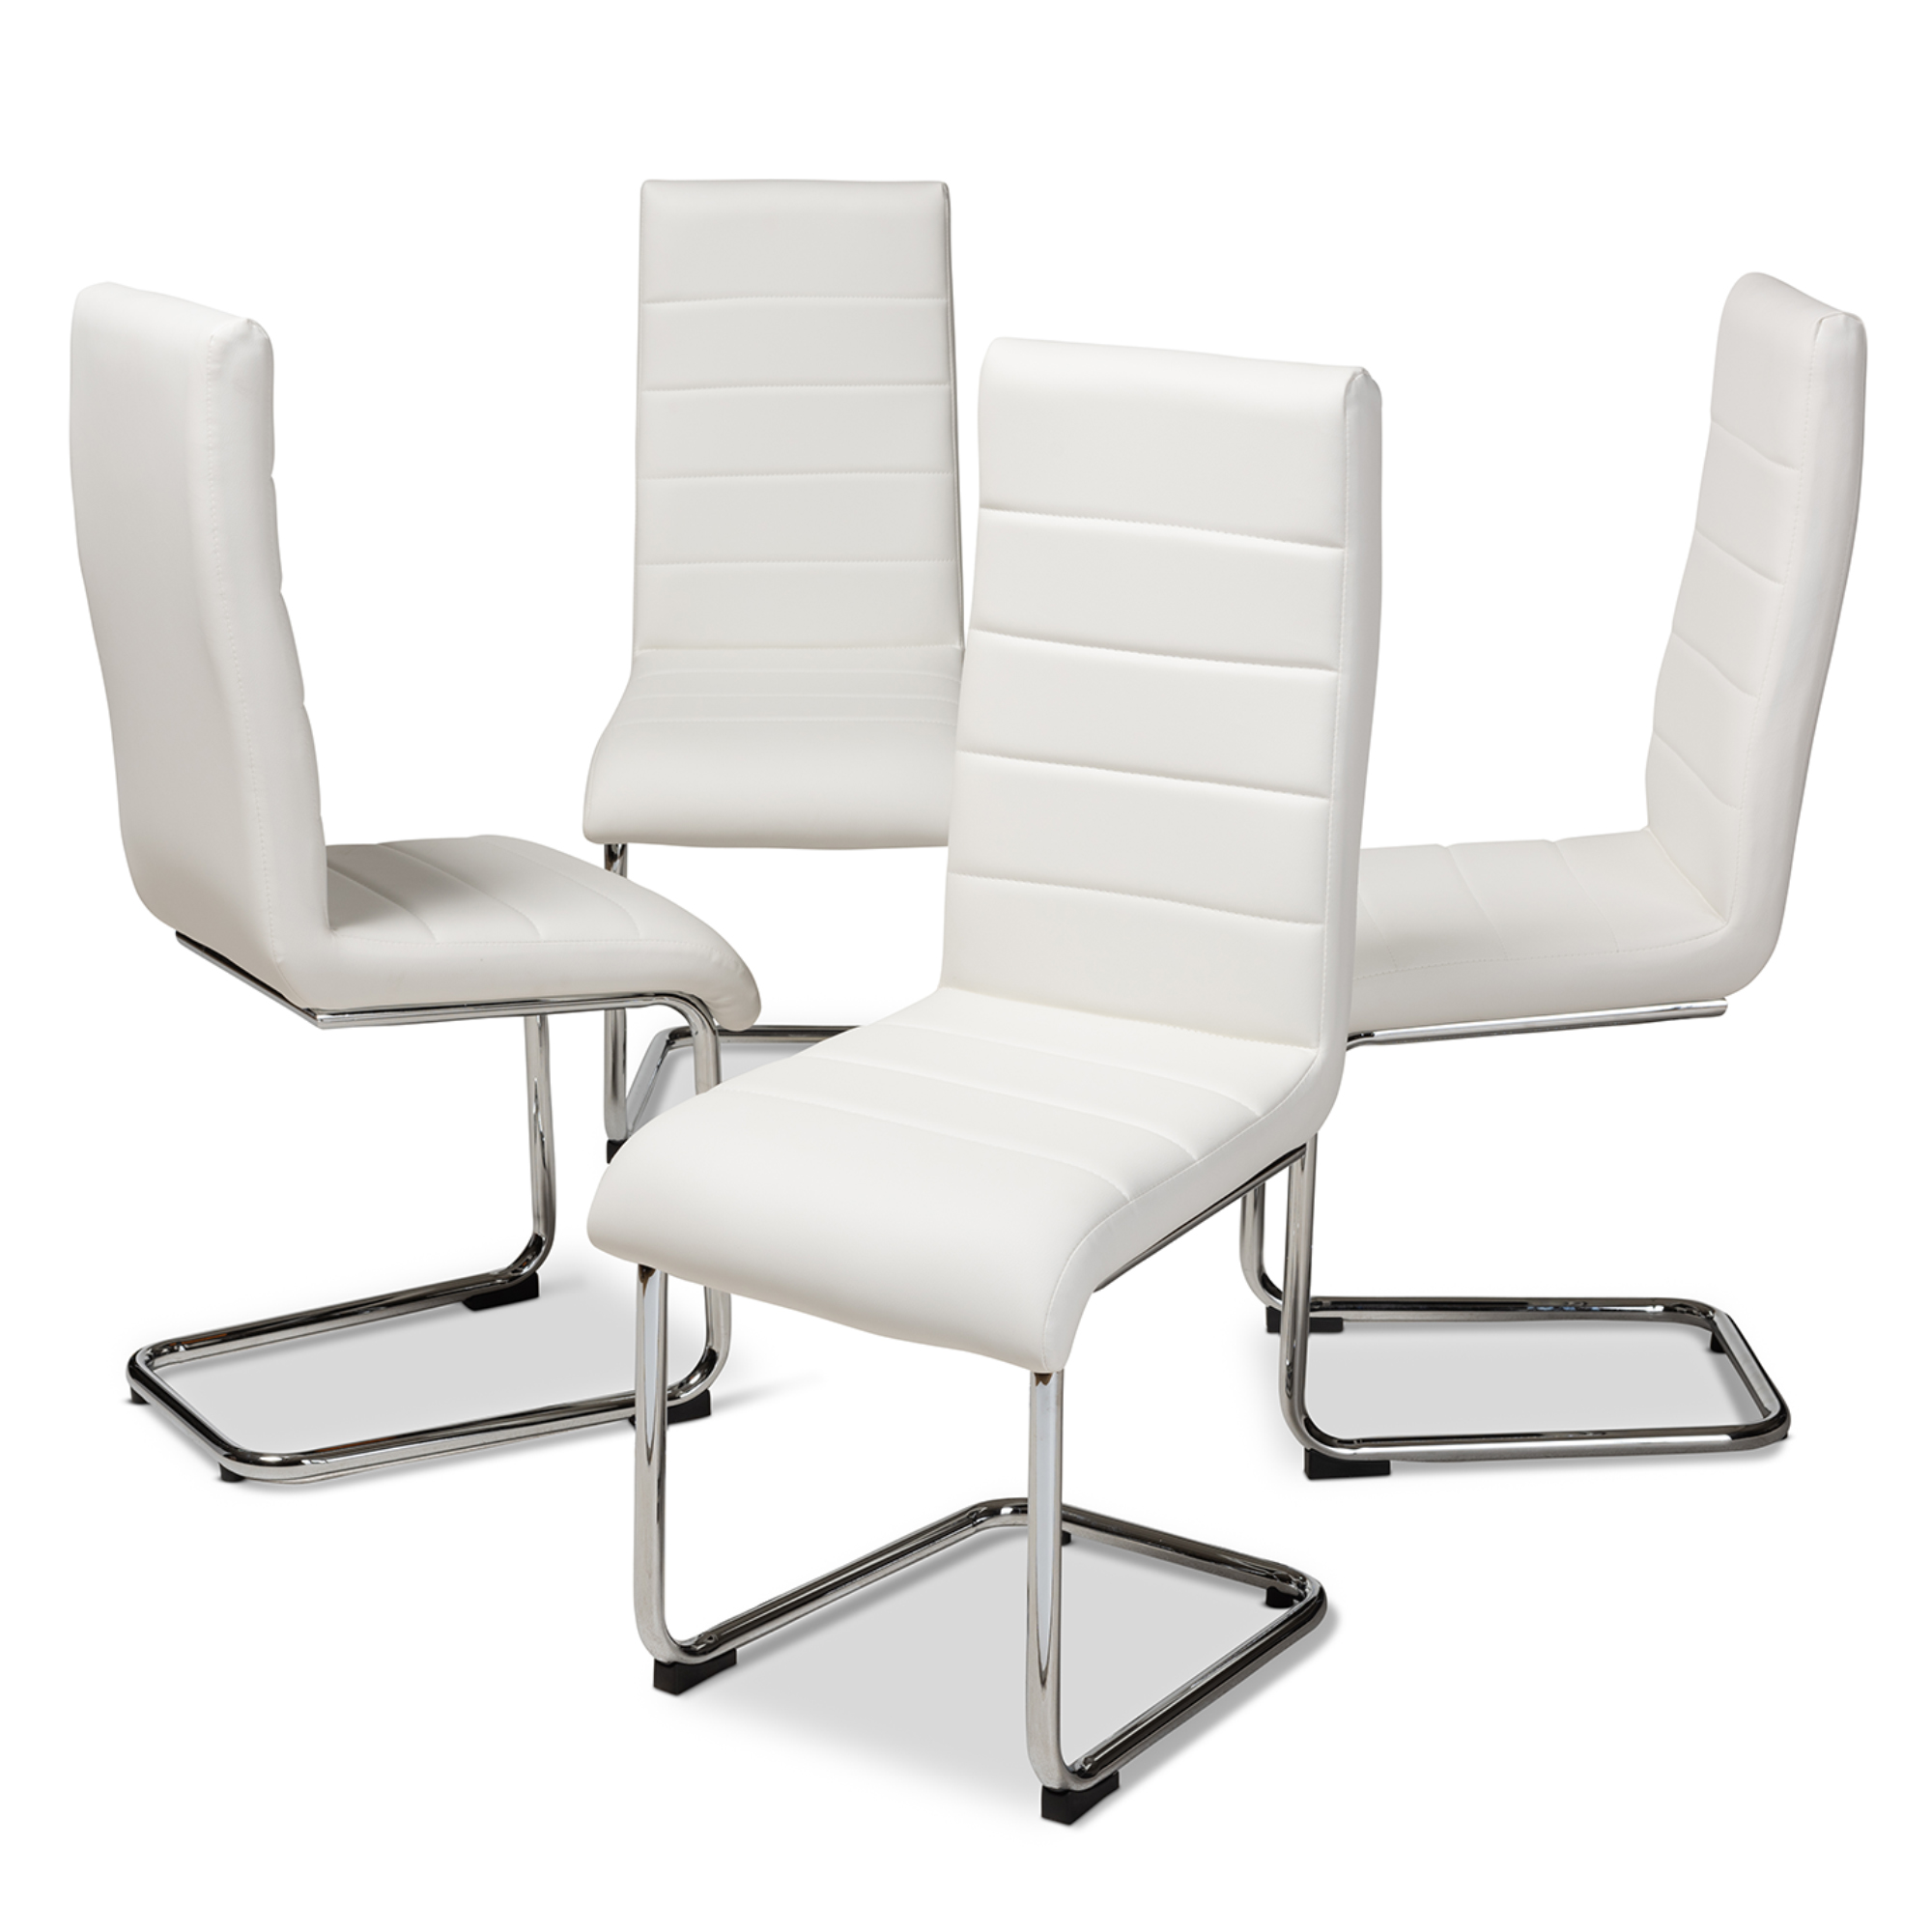 white upholstered chairs massage chair for sale baxton studio marlys modern and contemporary faux leather dining set of 4